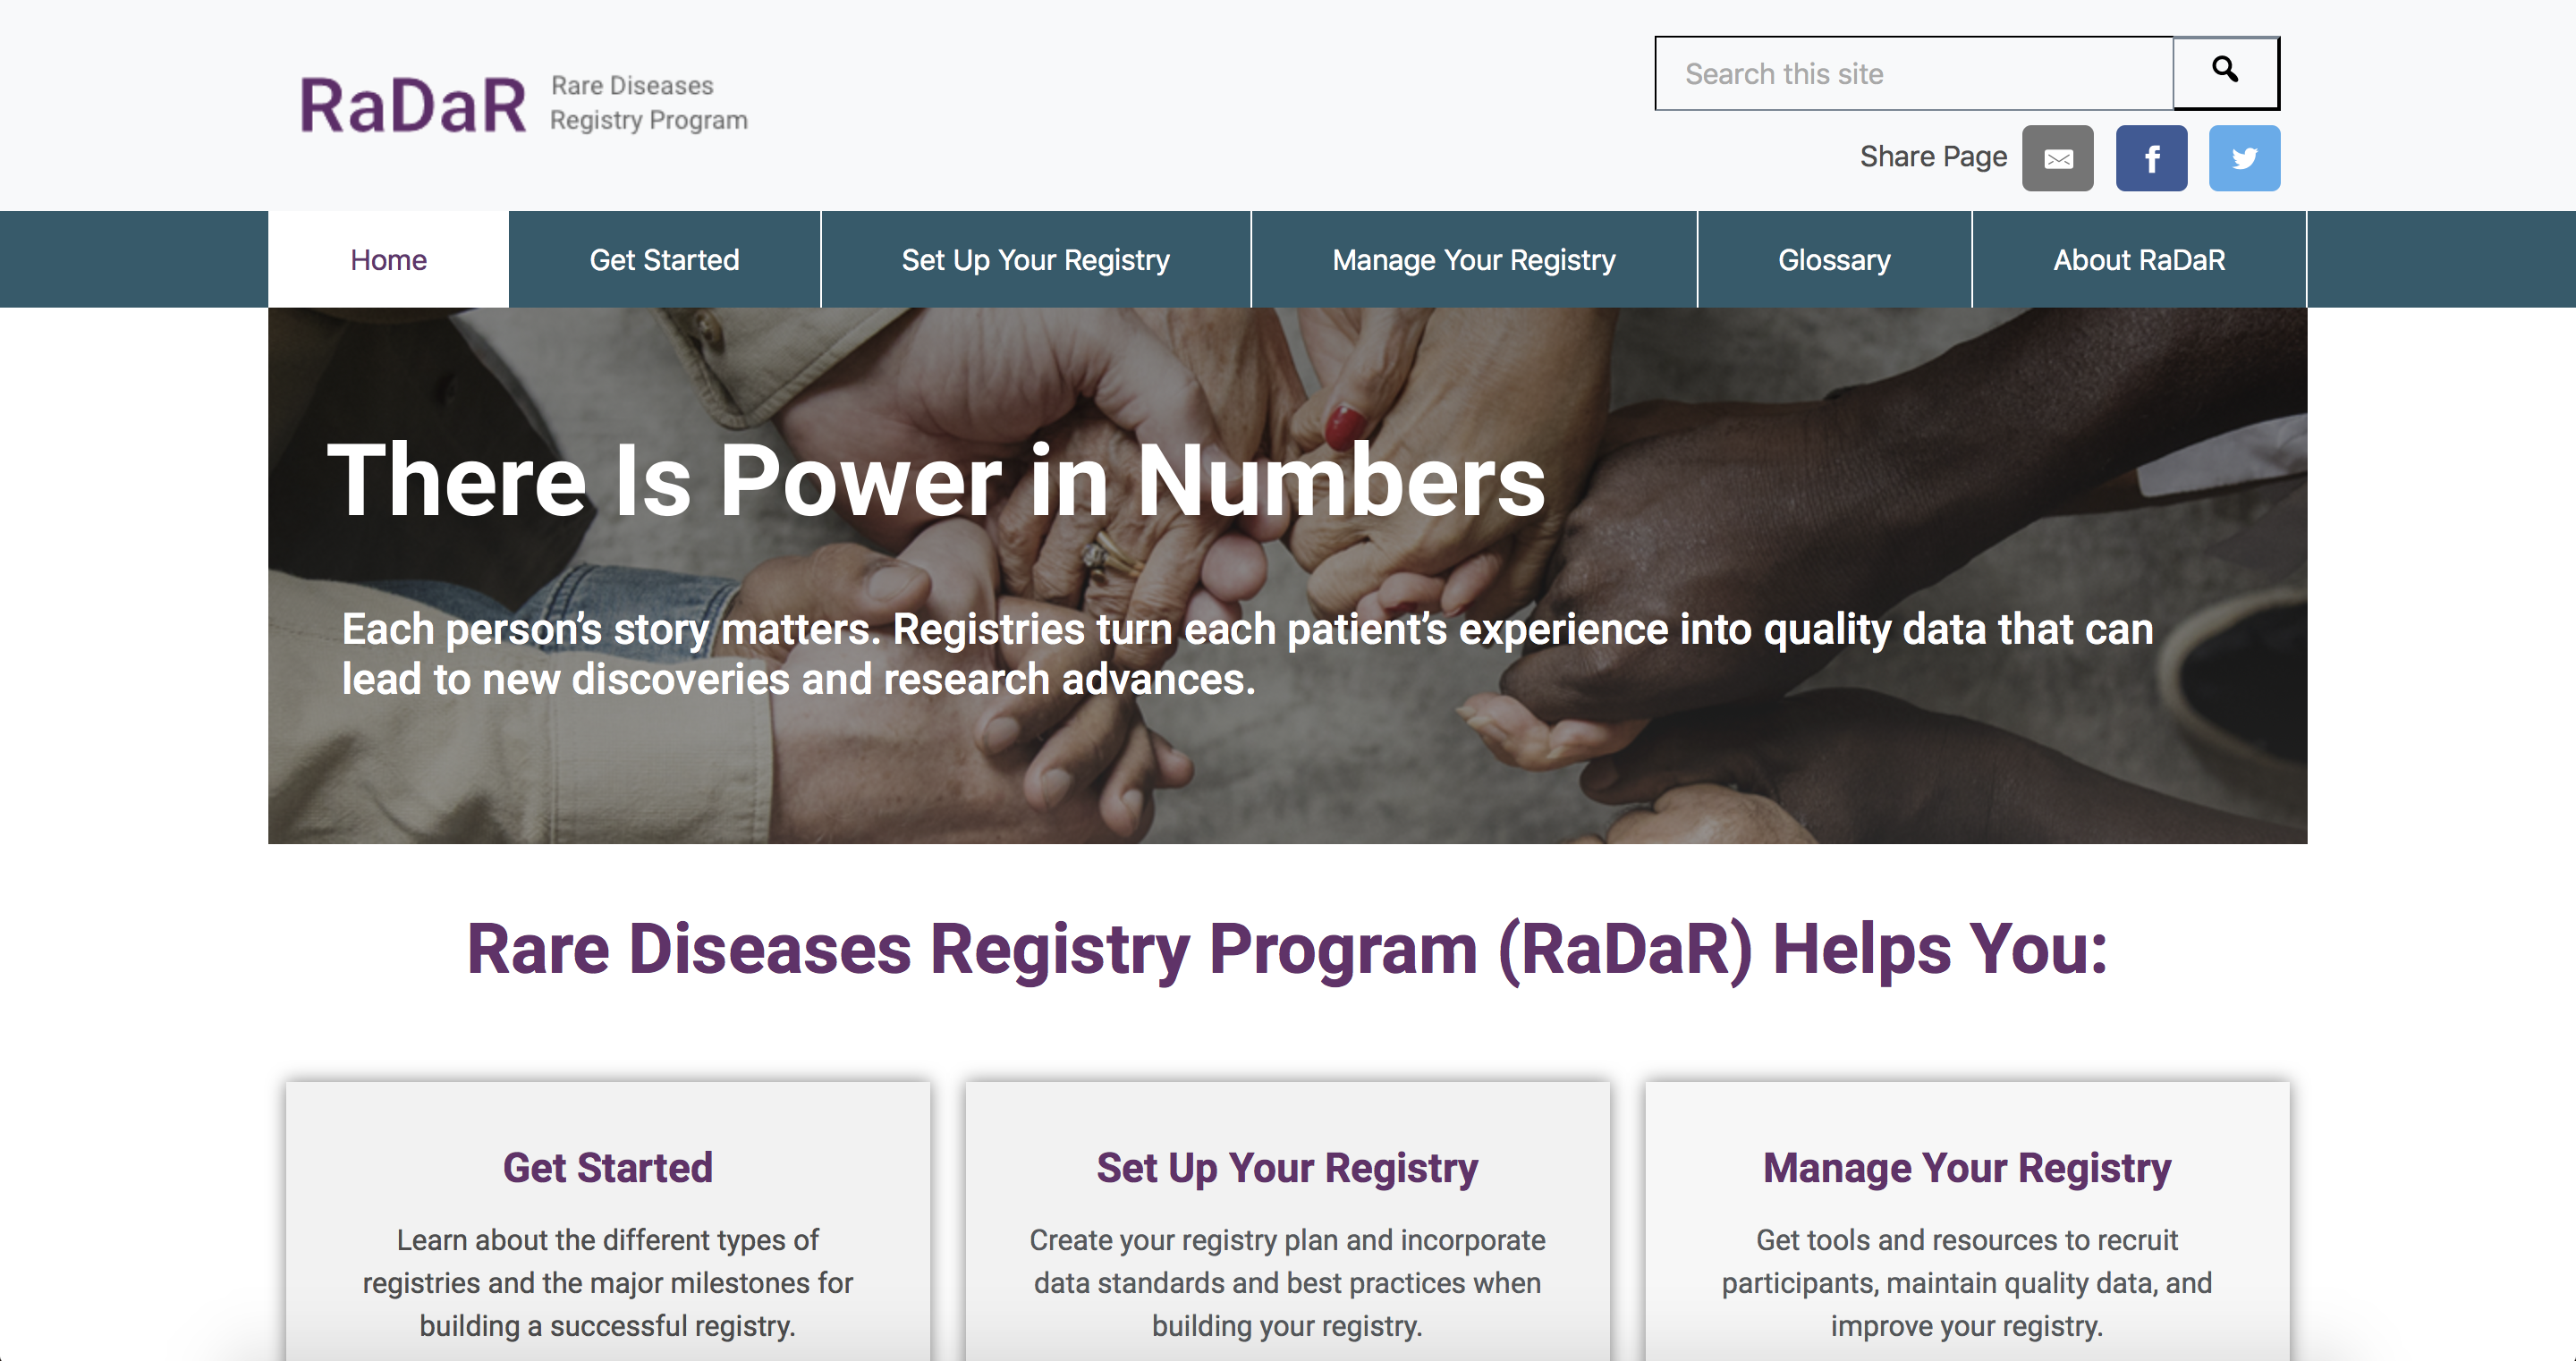 Rare-Diseases-Registry-Program-RaDaR image